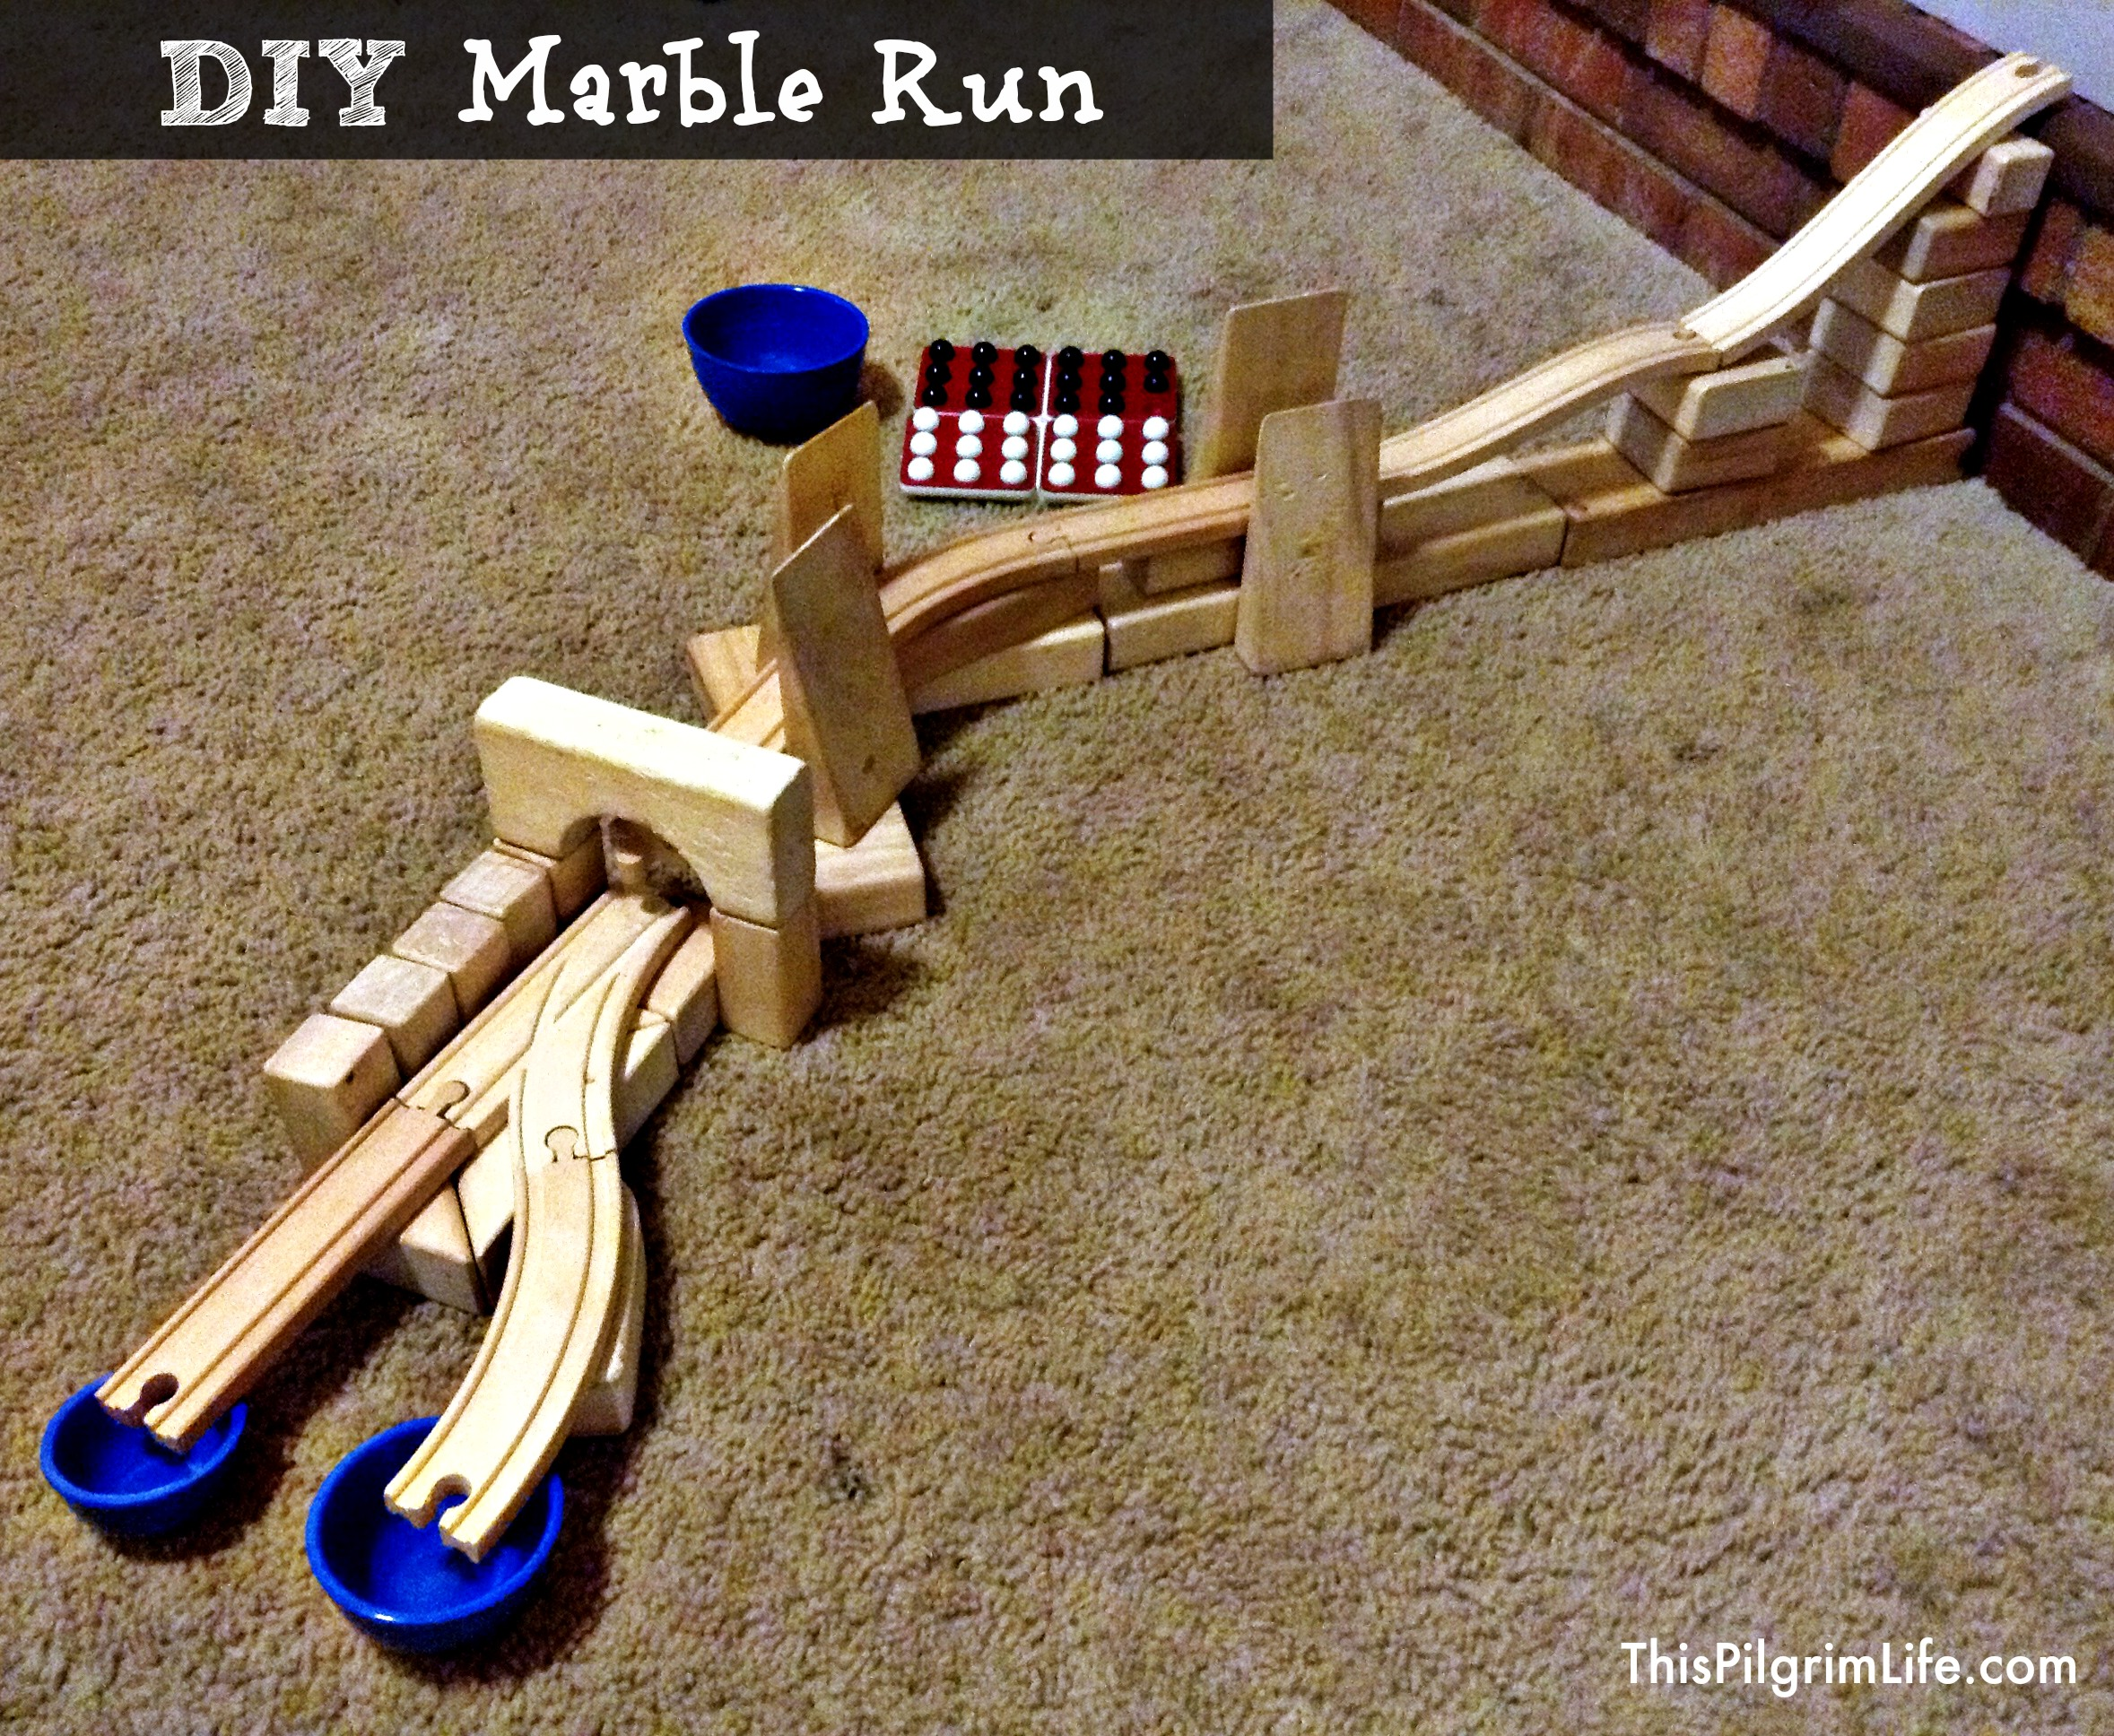 Make a marble run with wooden train tracks and blocks!